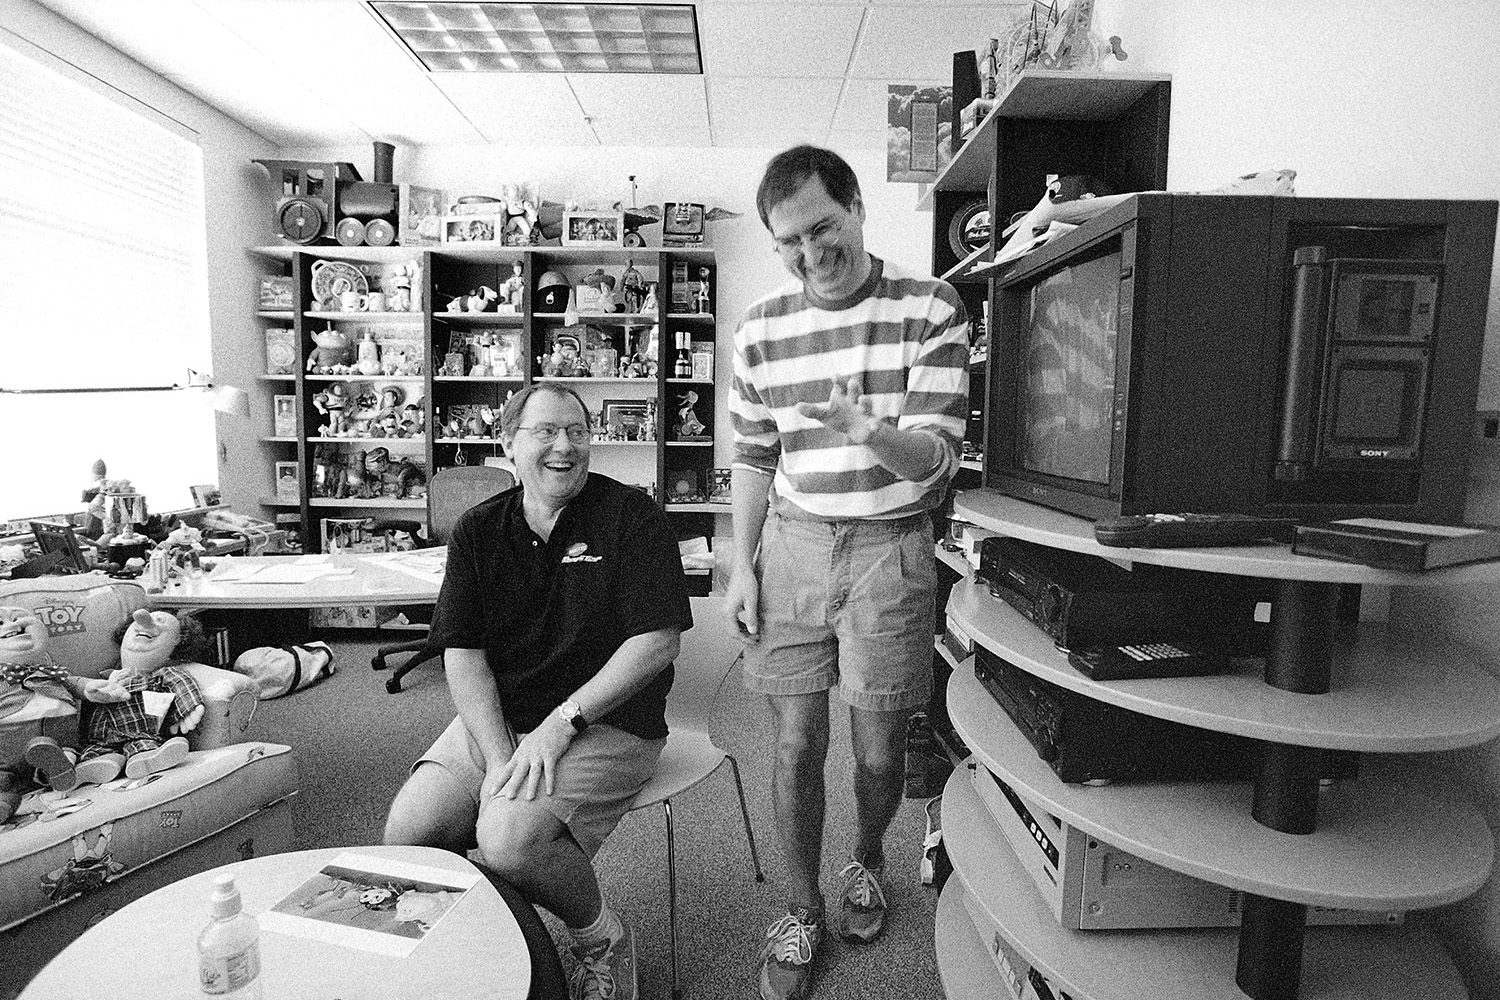 Jobs has a laugh with John Lasseter of Pixar in the animation studio's headquarters.